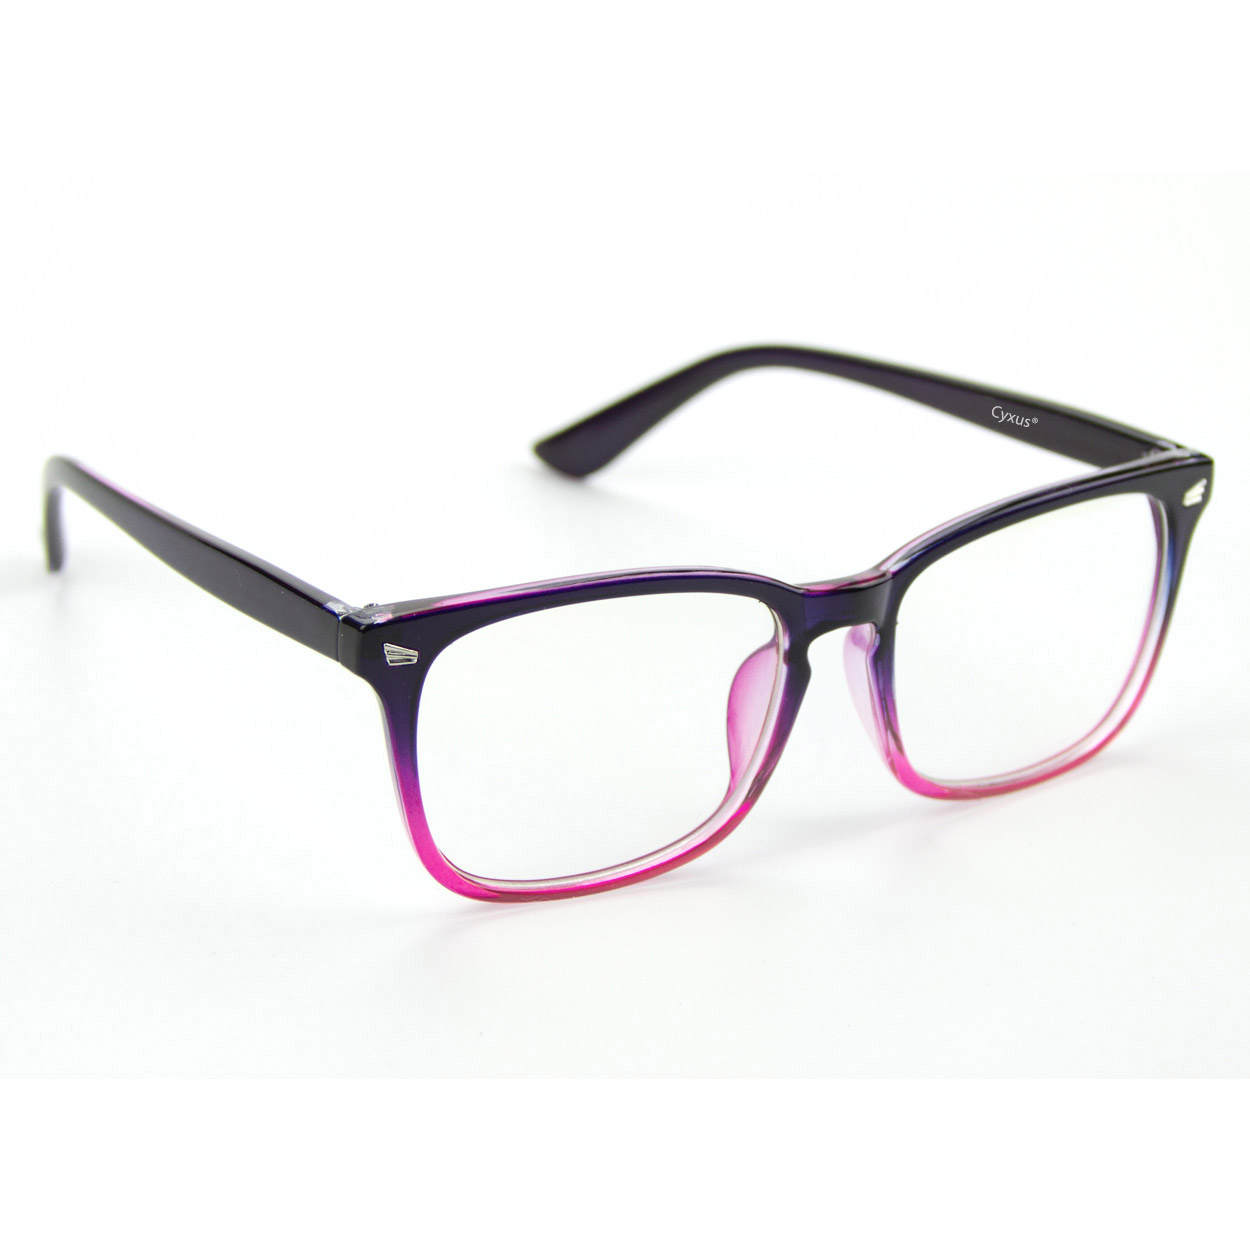 Cyxus Blue Light Blocking Computer Glasses for Women/Girls, Anti Eyestrain Headaches UV400, Gradient Pink Frame and Clear Lens Reading Eyewear - Walmart.com | Tuggl